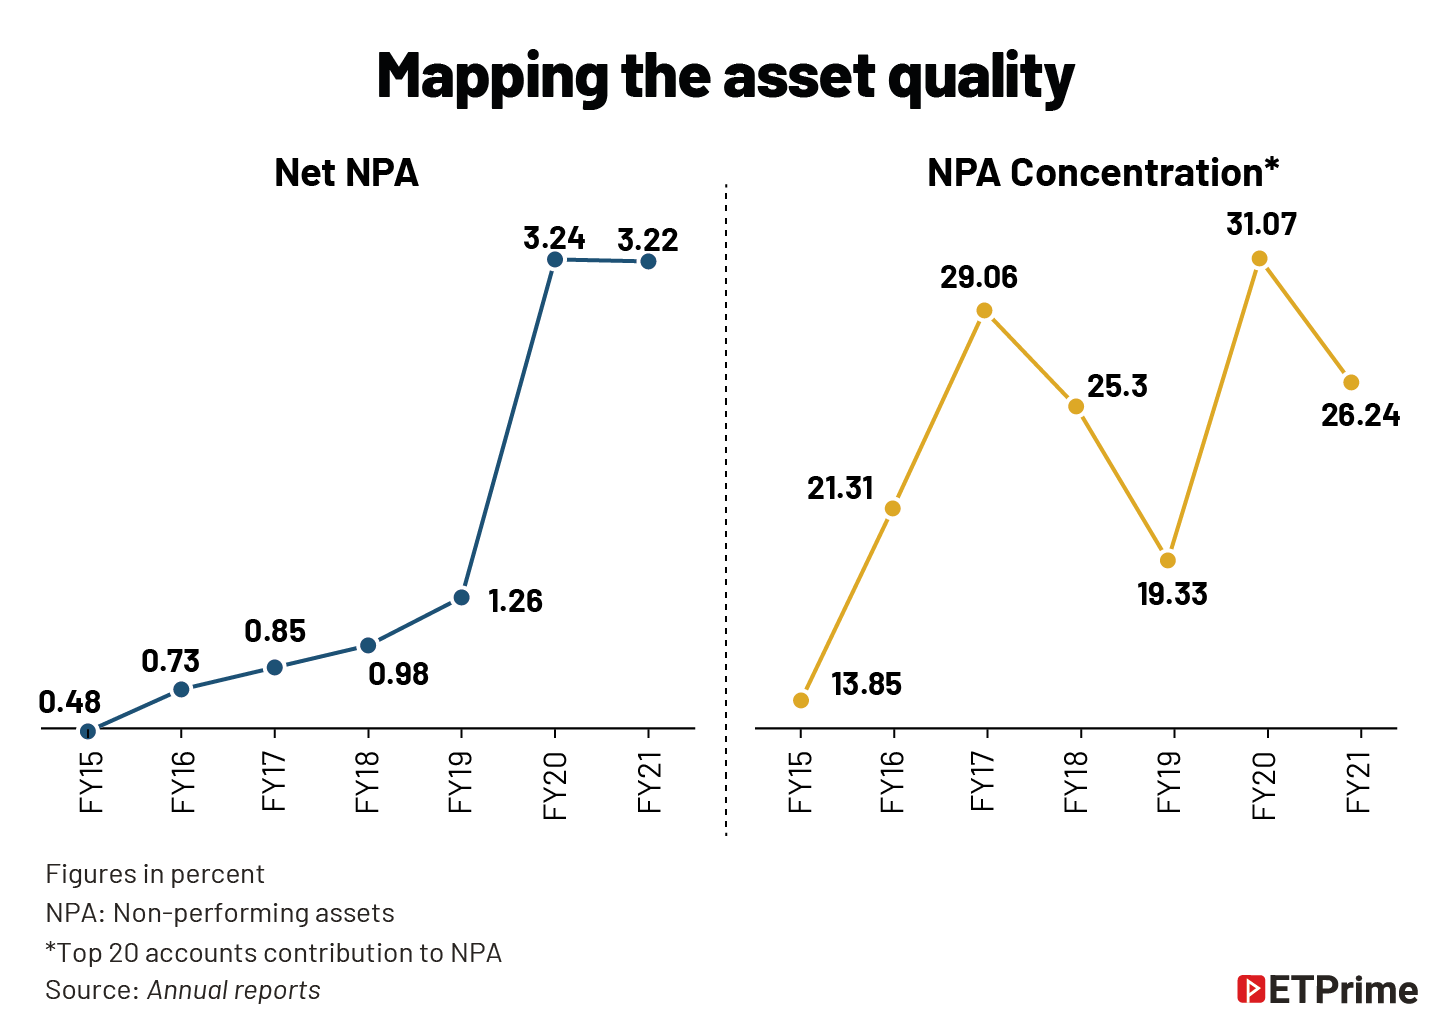 Mapping the asset quality@2x